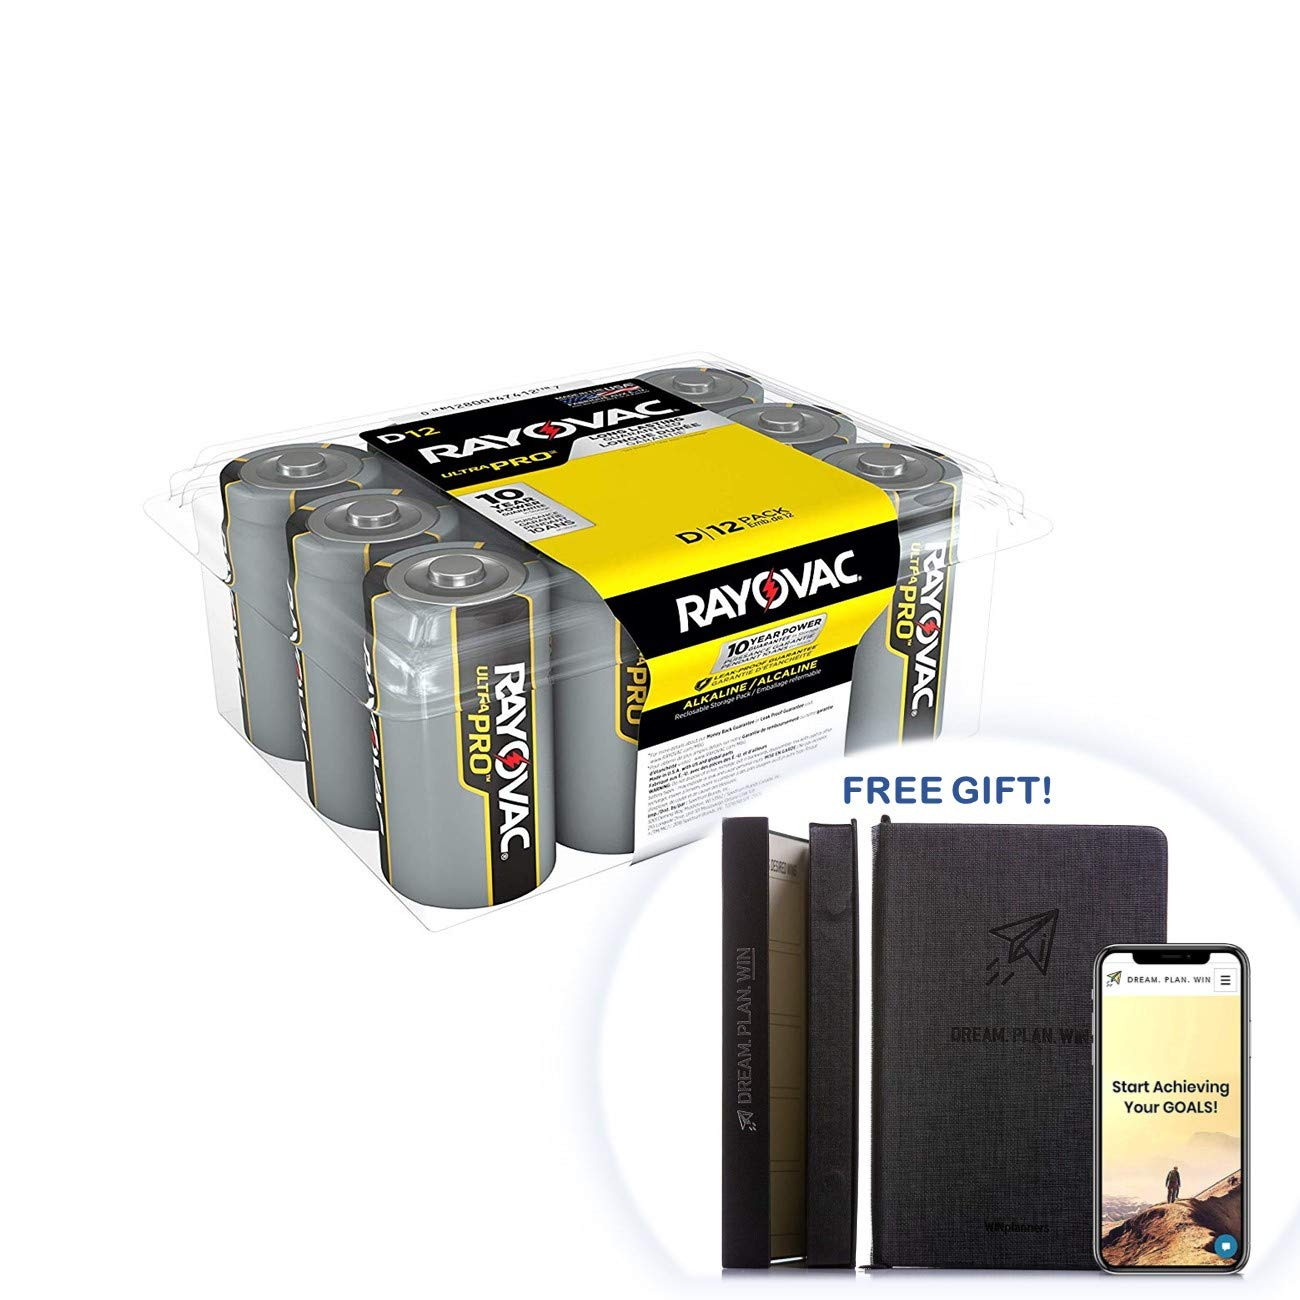 Rayovac D Batteries, Ultra Pro Alkaline D Cell Batteries (28 Battery Count) + Free Gift - Productivity Planner - Attain Your Dreams! (28 Count) by Rayovac (Image #1)